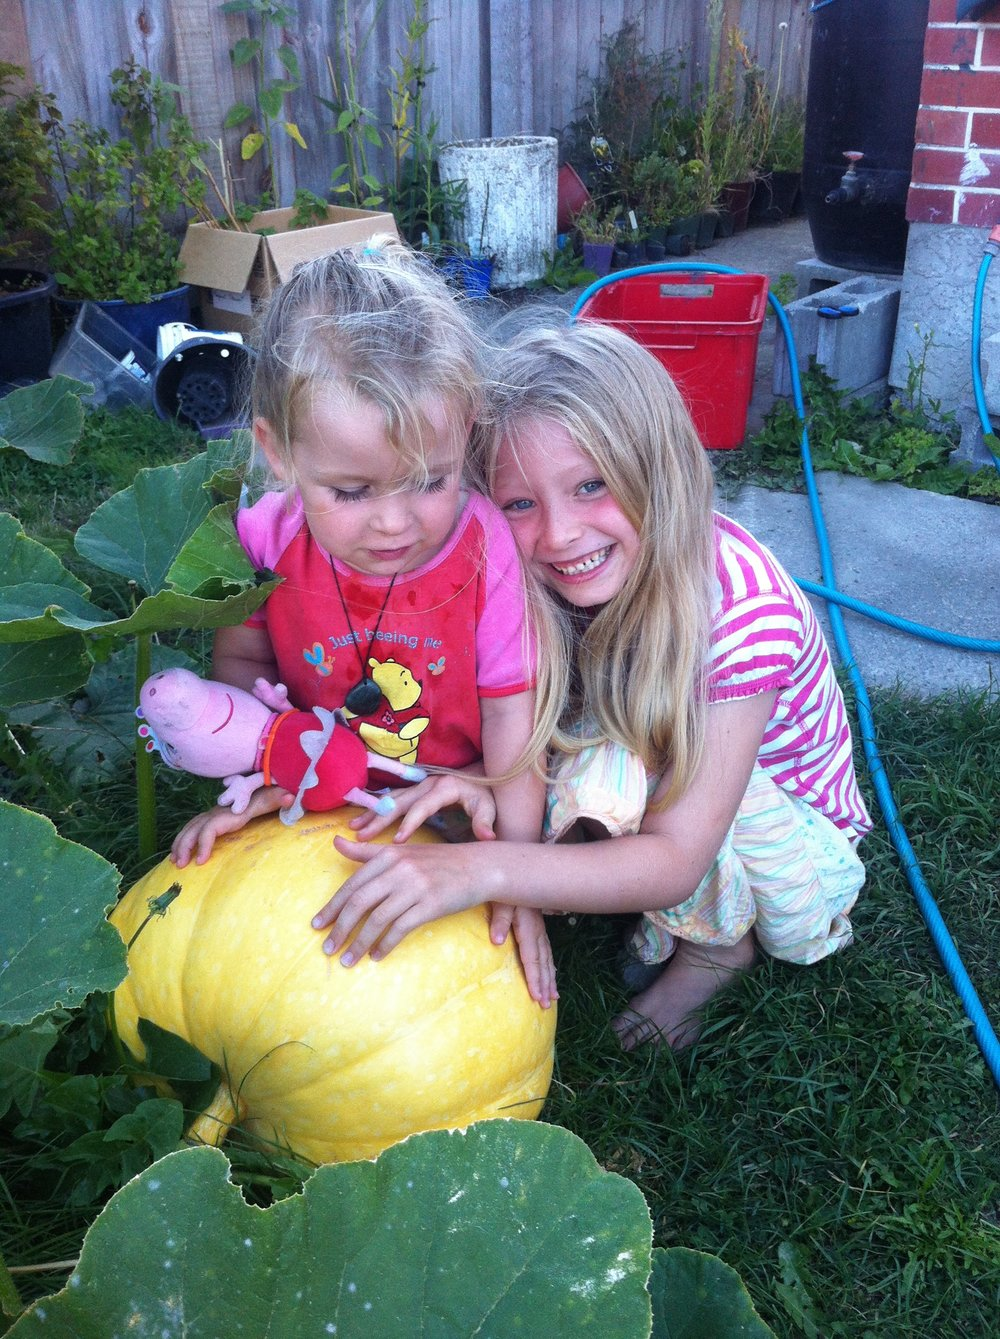 Growing giant pumpkins - great fun for the kids